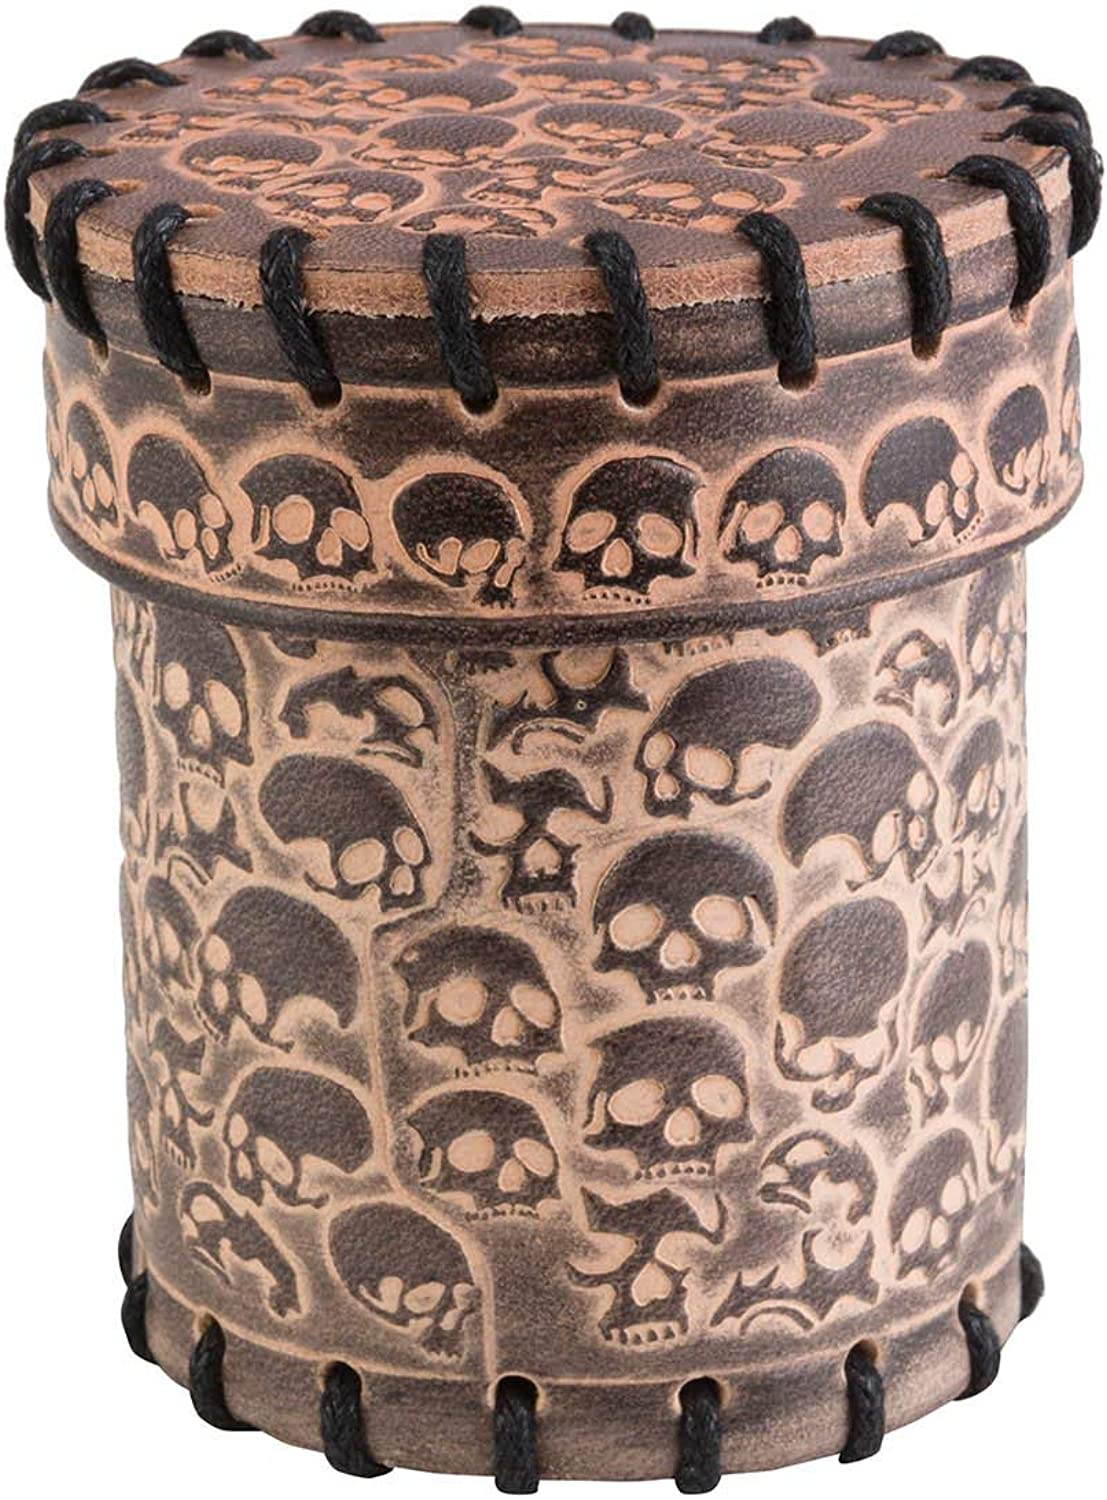 Q Workshop CSKU124 Skully Beige Leather Dice Cup